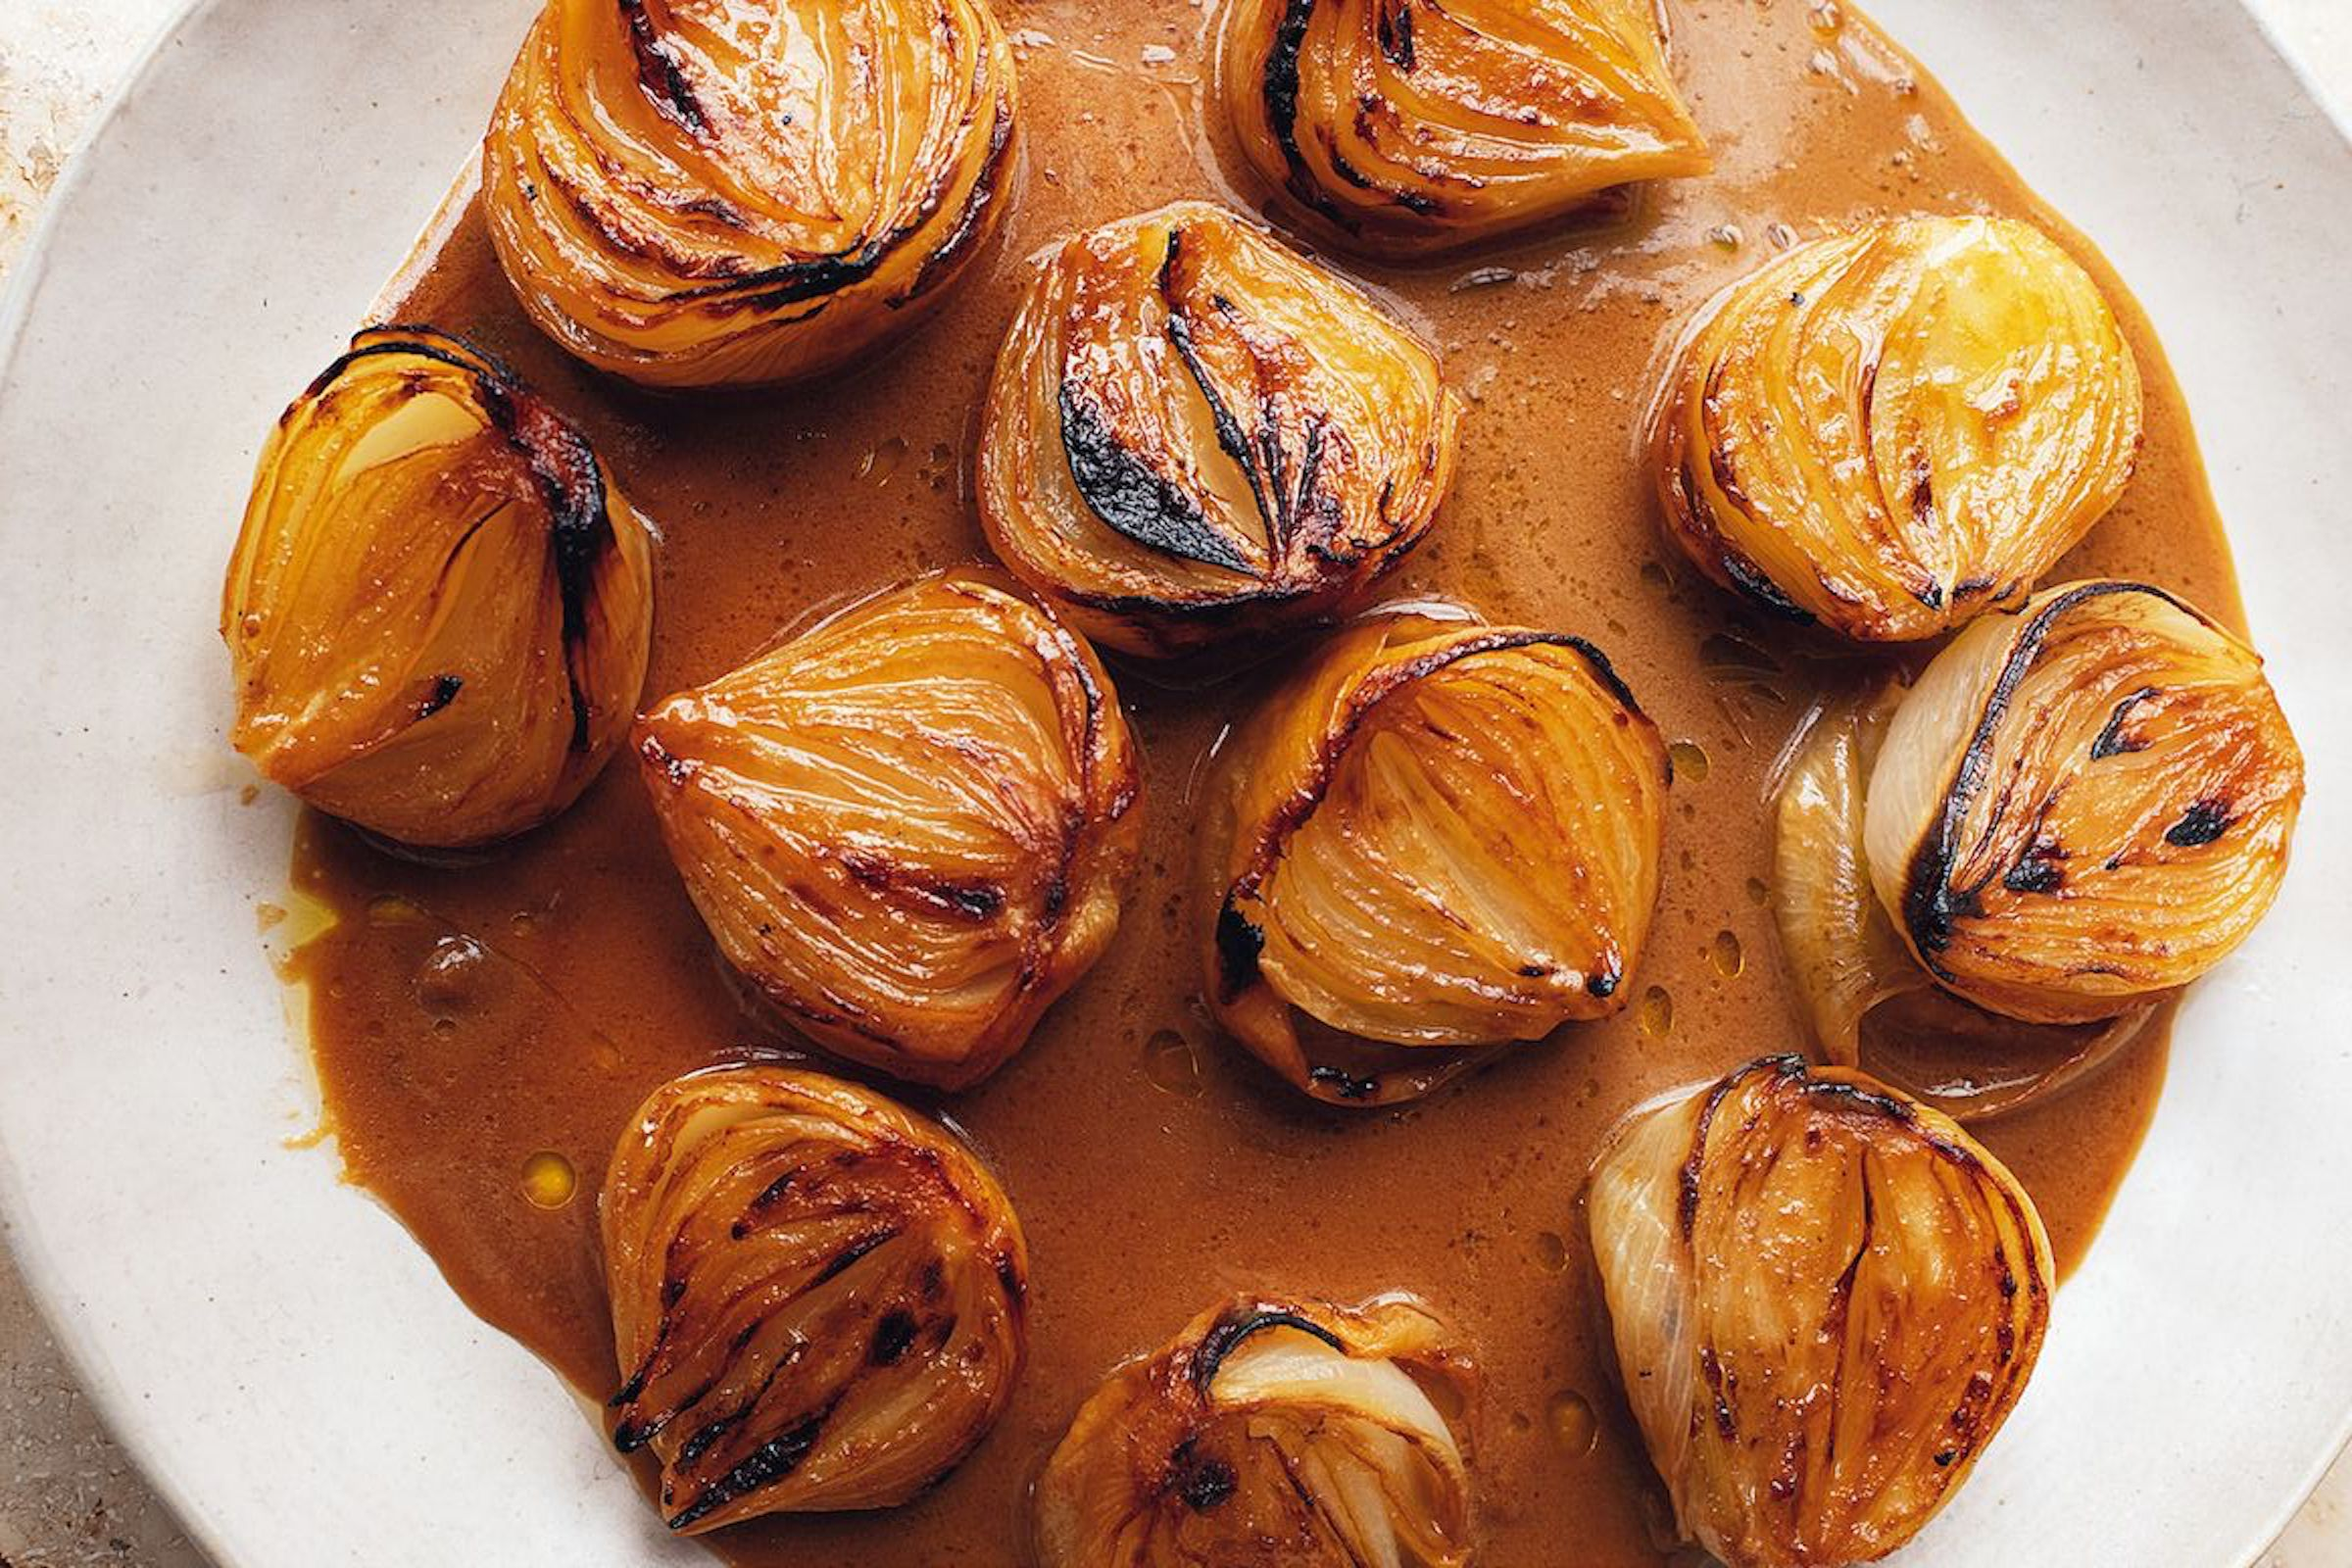 A platter of baked, slightly charred onions in a deep brown miso bitter sauce, served on a large white platter; it's a recipe from Yotam Ottolenghi, in Flavour